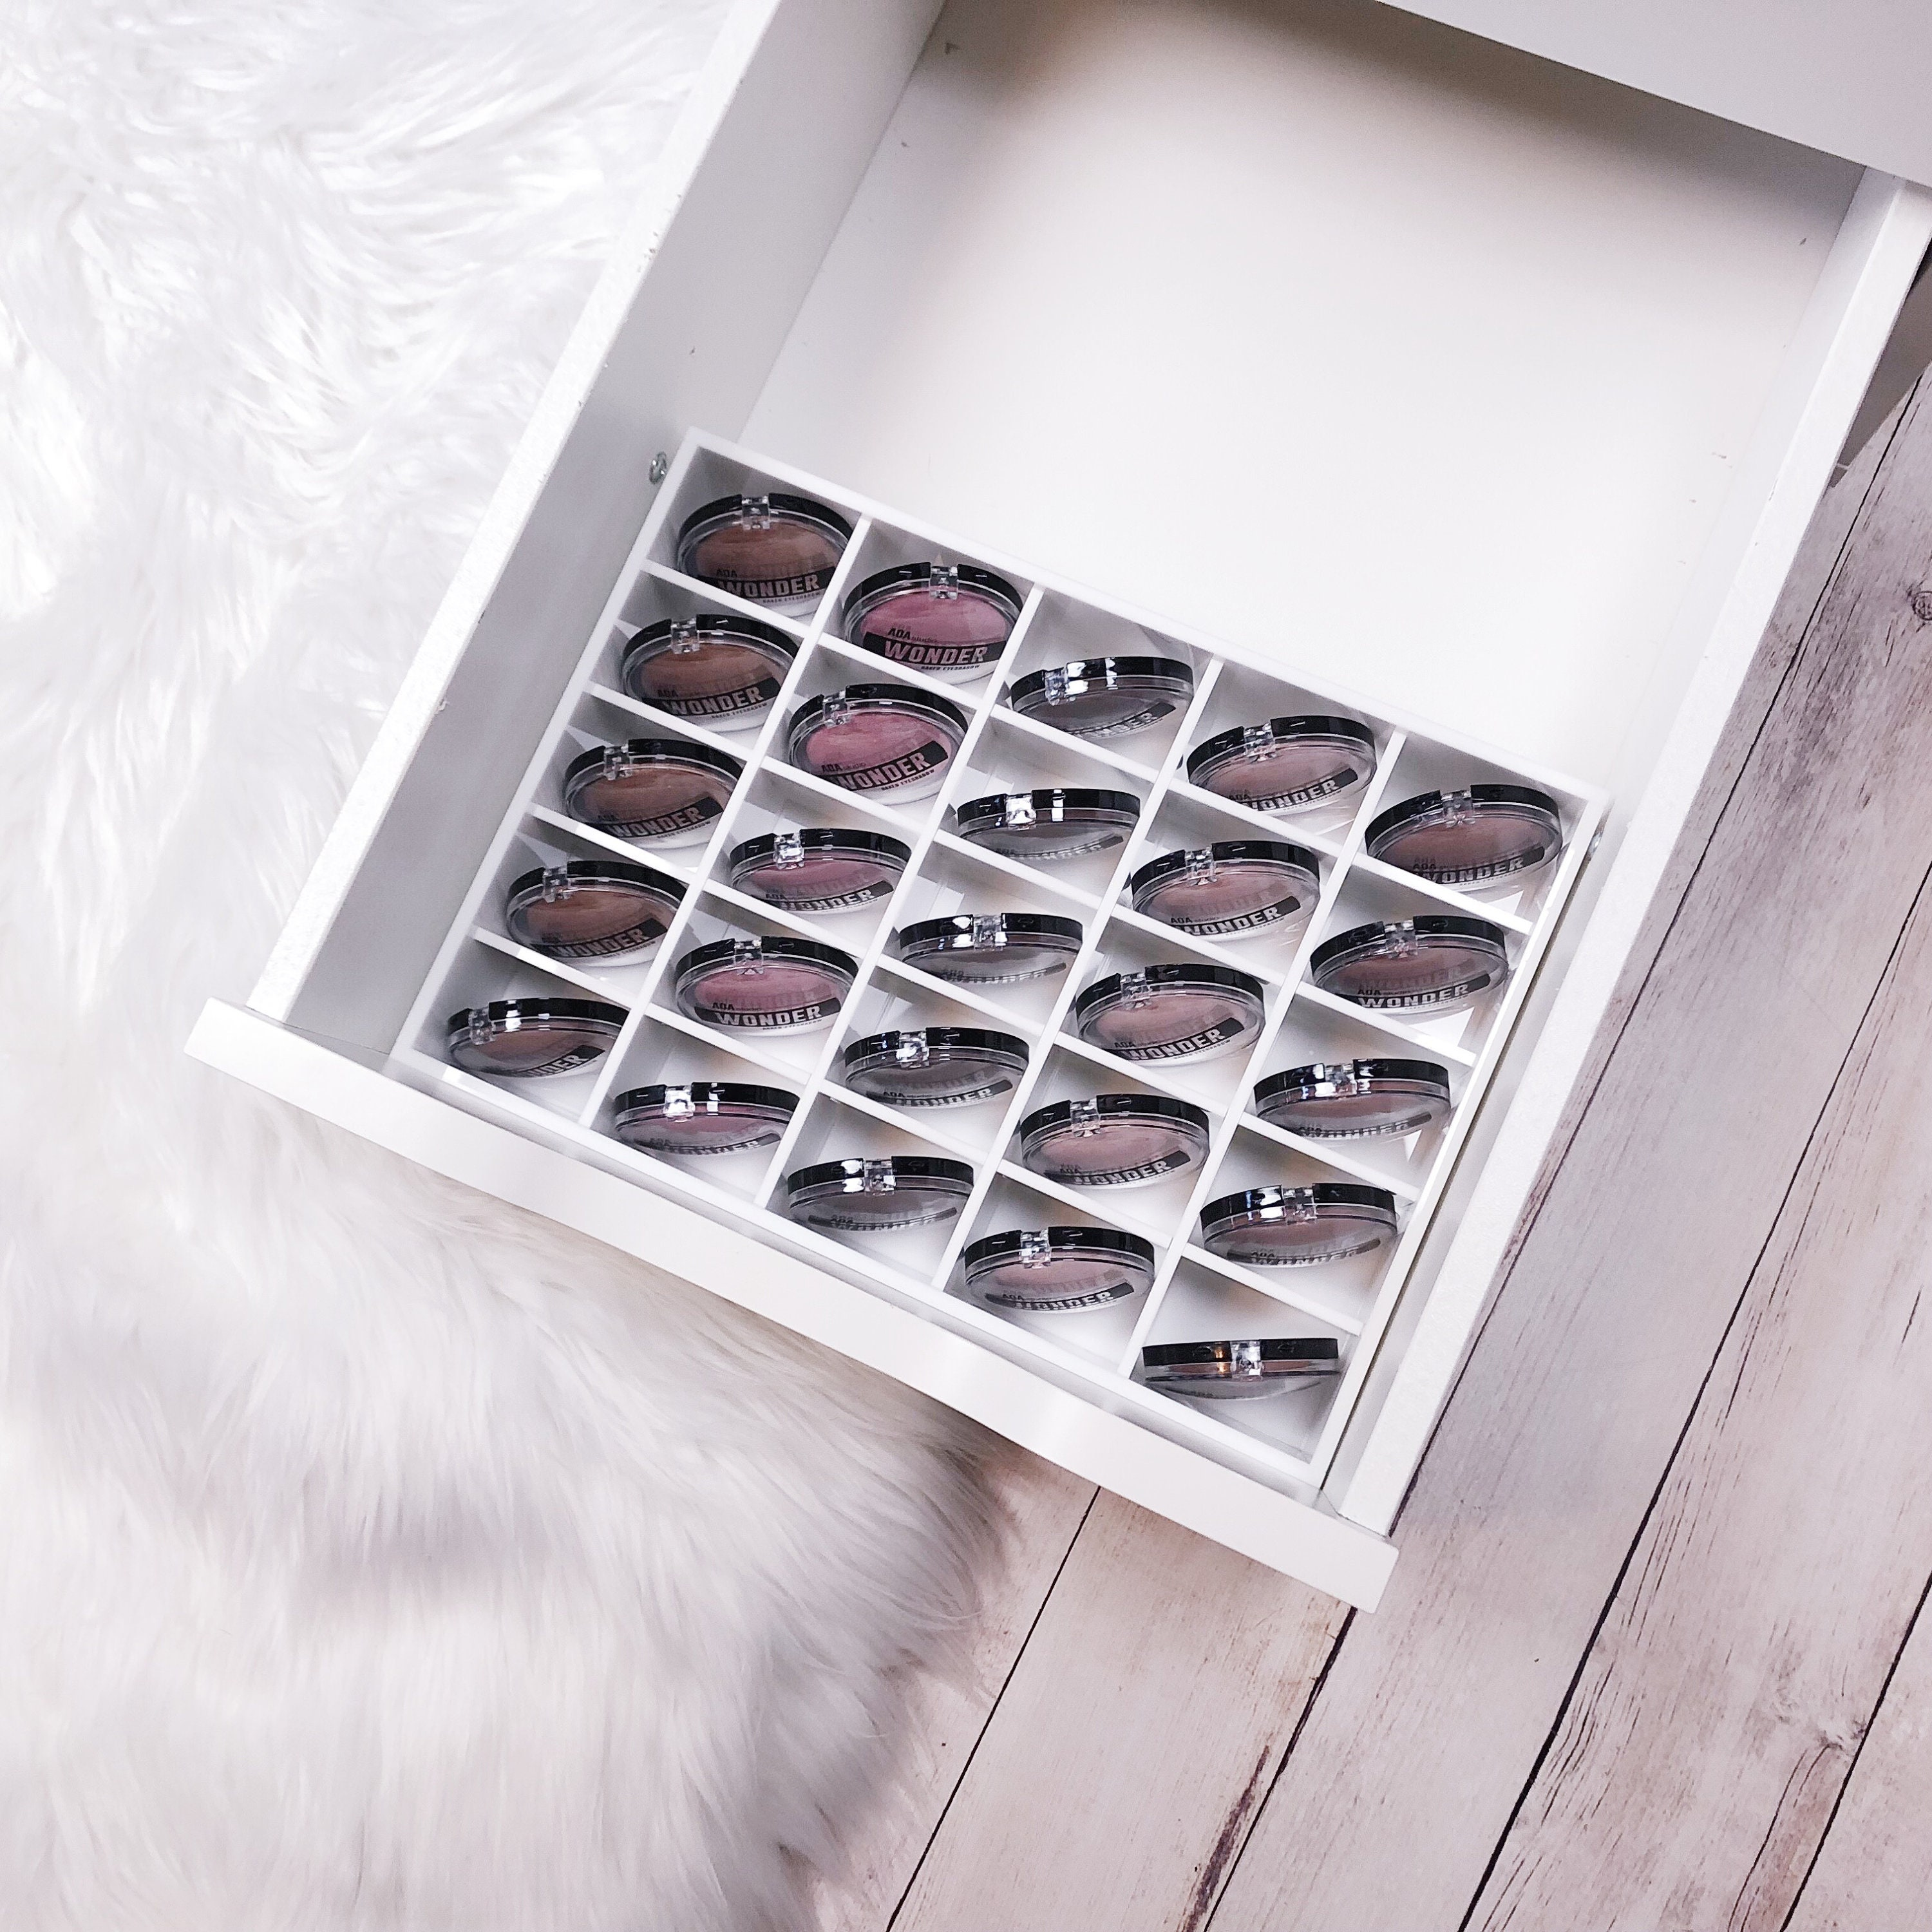 Mini Shadow Drawer Organizer Fits Ikea Alex Drawer Units Etsy,2 Bedroom Apartments For Rent Near Me Under 1000